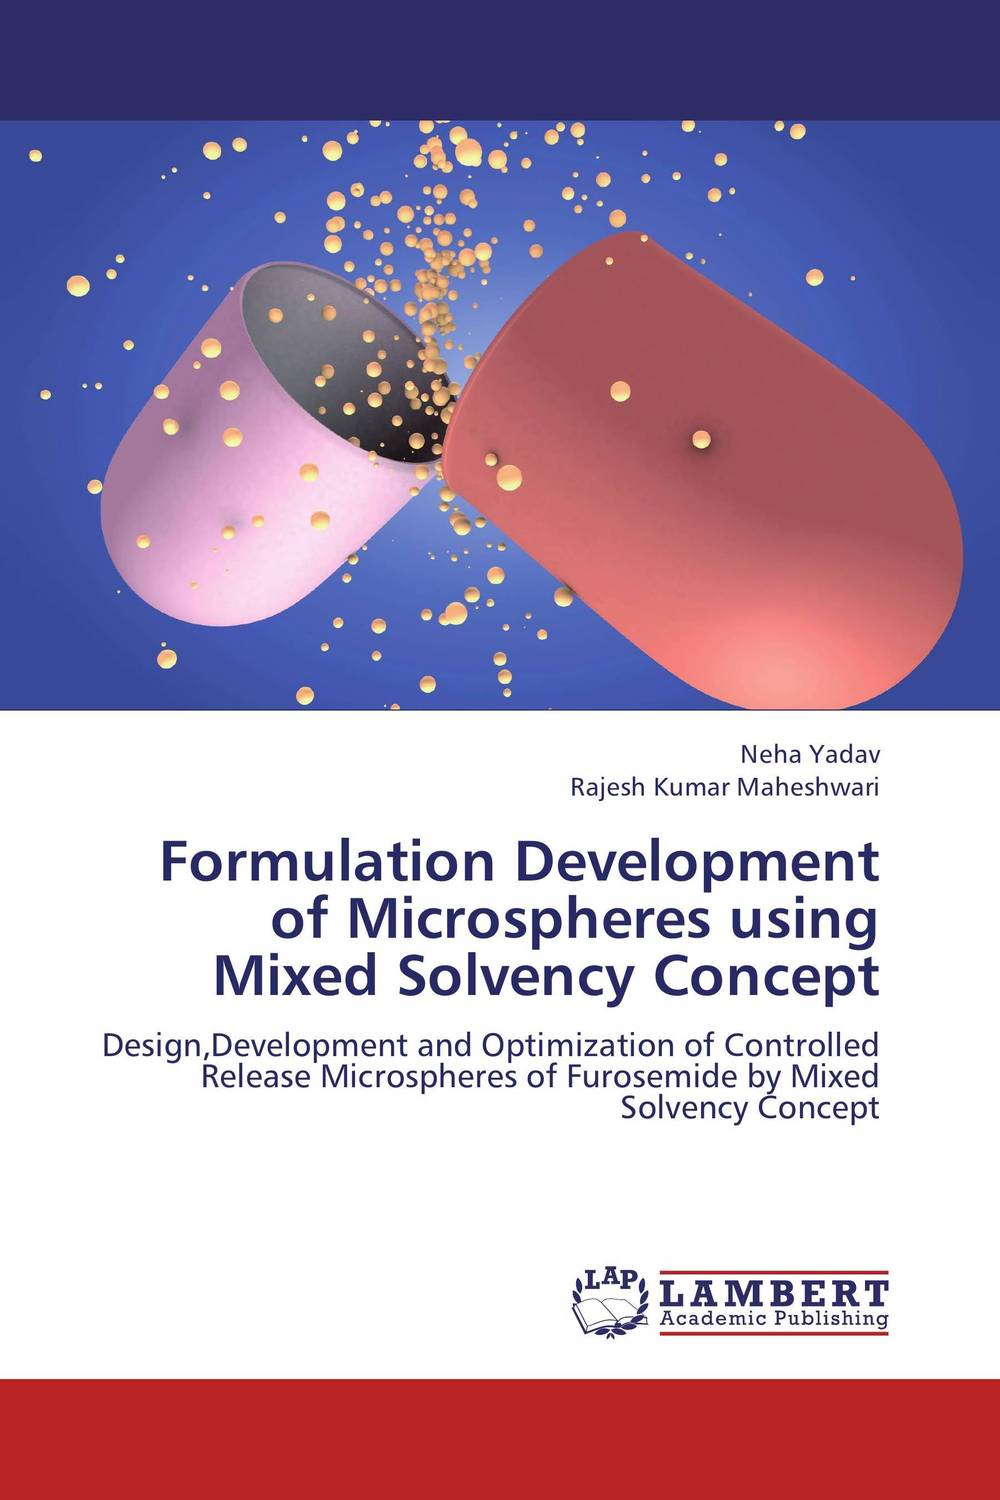 Formulation Development of Microspheres using Mixed Solvency Concept formulation and evaluation of microspheres by mixed solvency concept